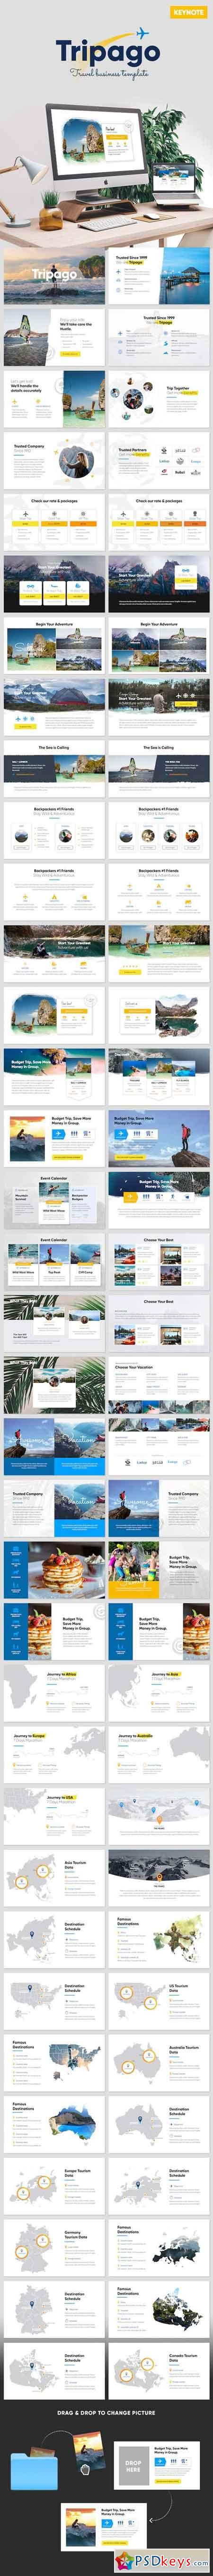 Tripago Travelling Business Keynote Template 20758016 Brochures